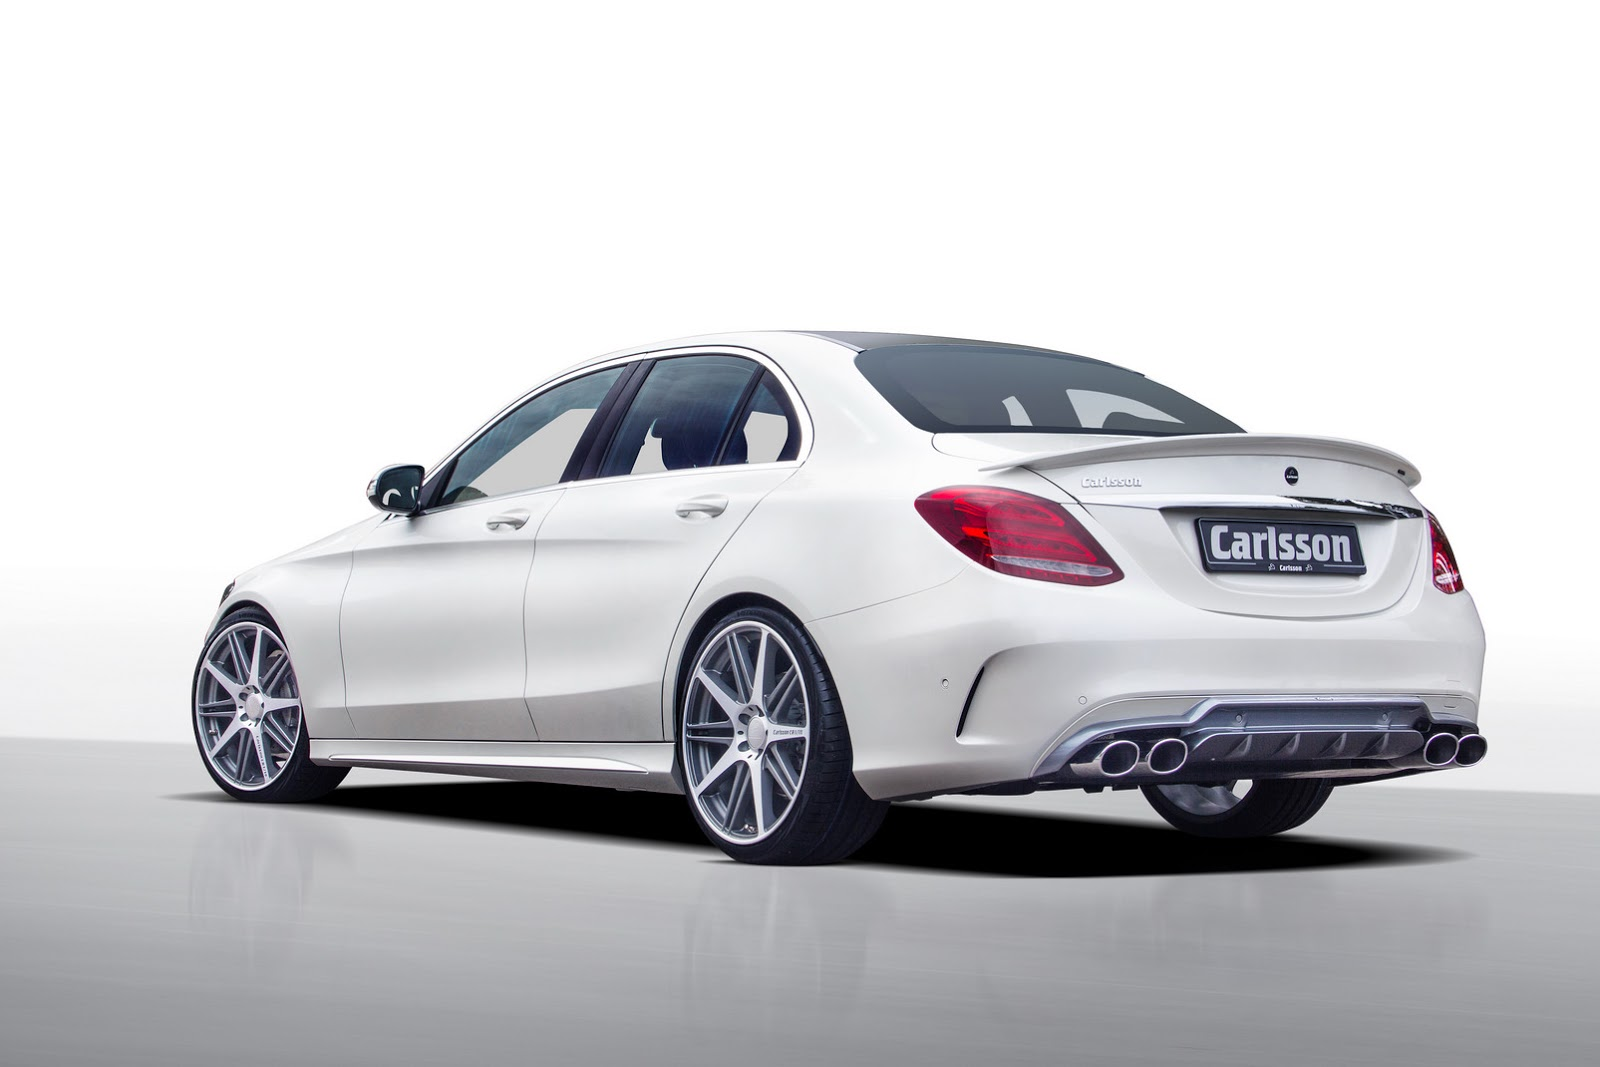 carlsson 39 s take on new mercedes benz c class amg sport. Black Bedroom Furniture Sets. Home Design Ideas